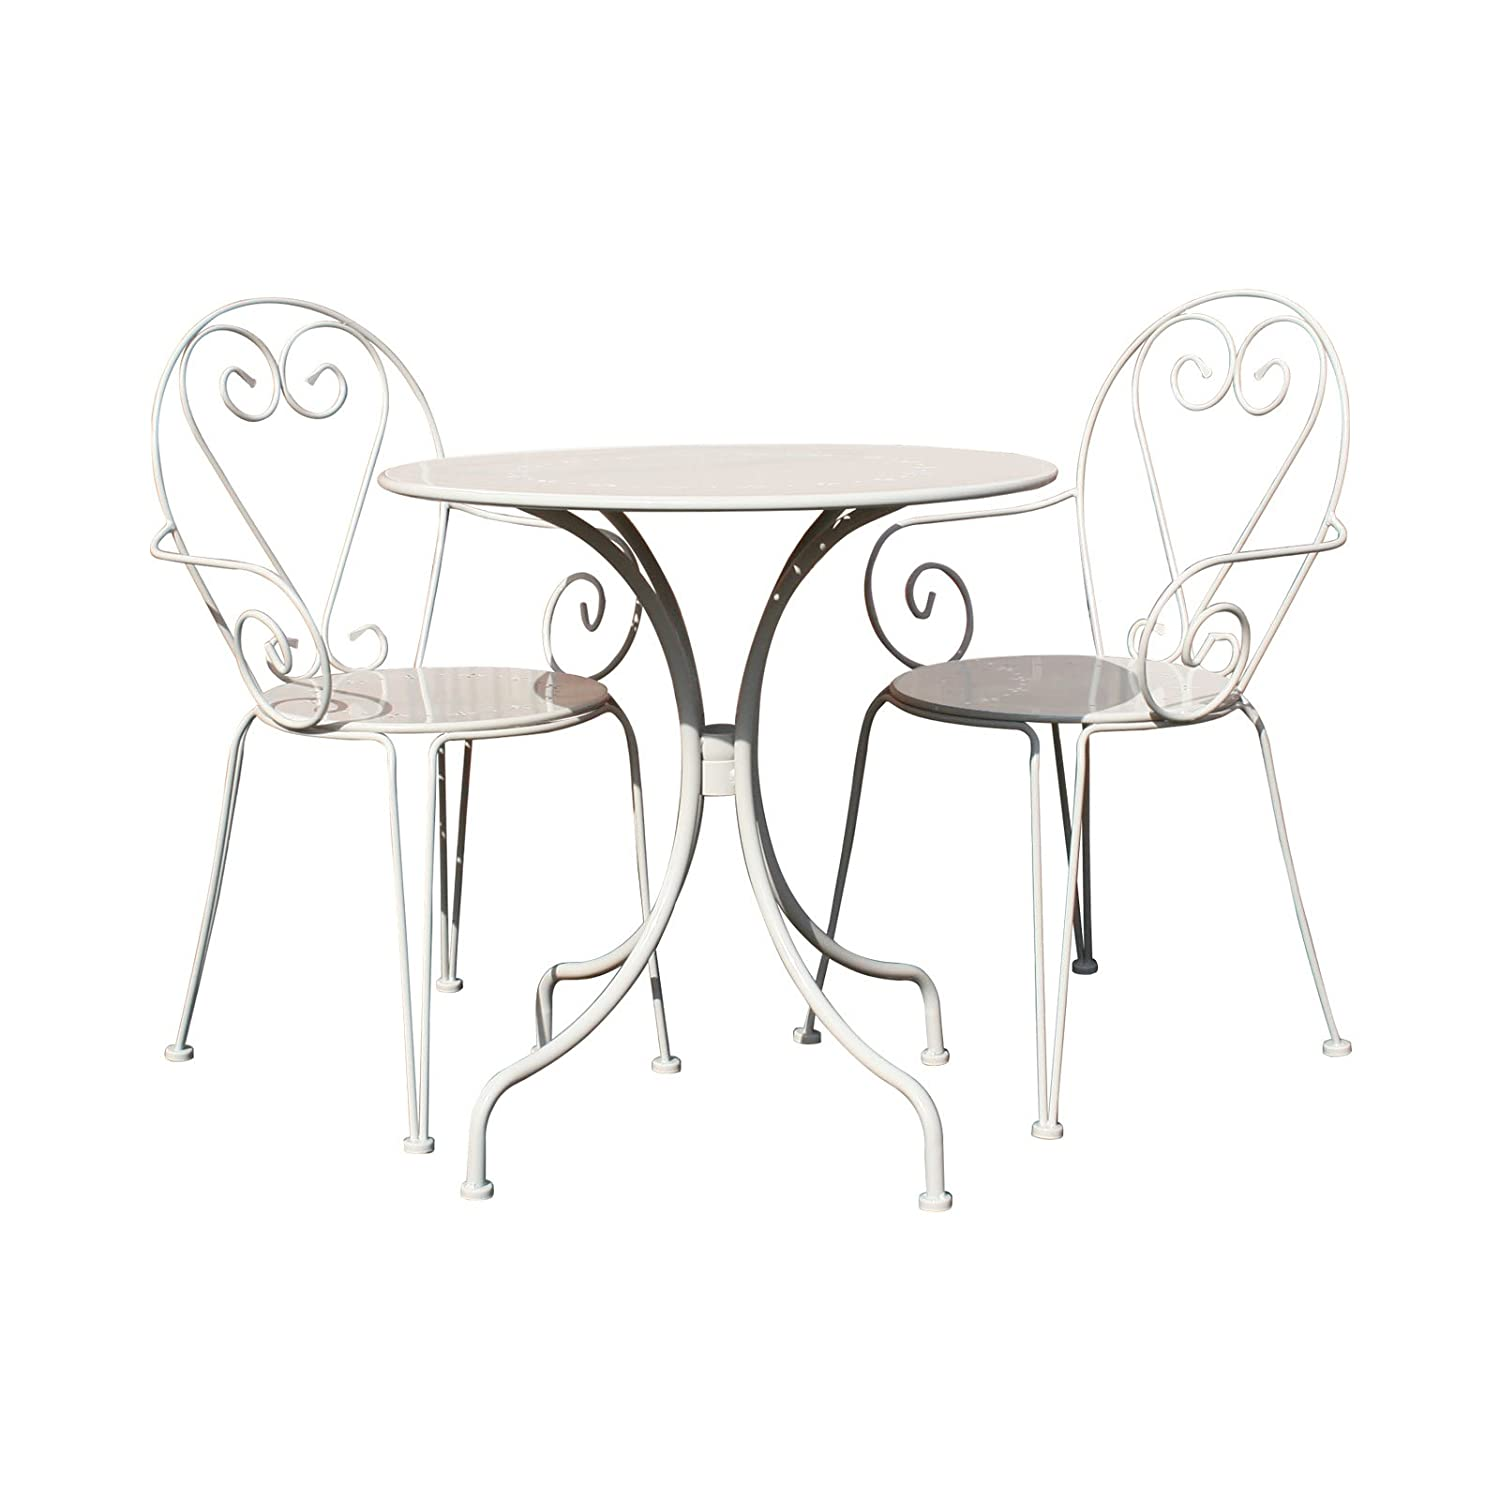 Charles Bentley Garden Outdoor Steel Heart 3 Piece Shabby Chic Bistro Set - Cream & Grey